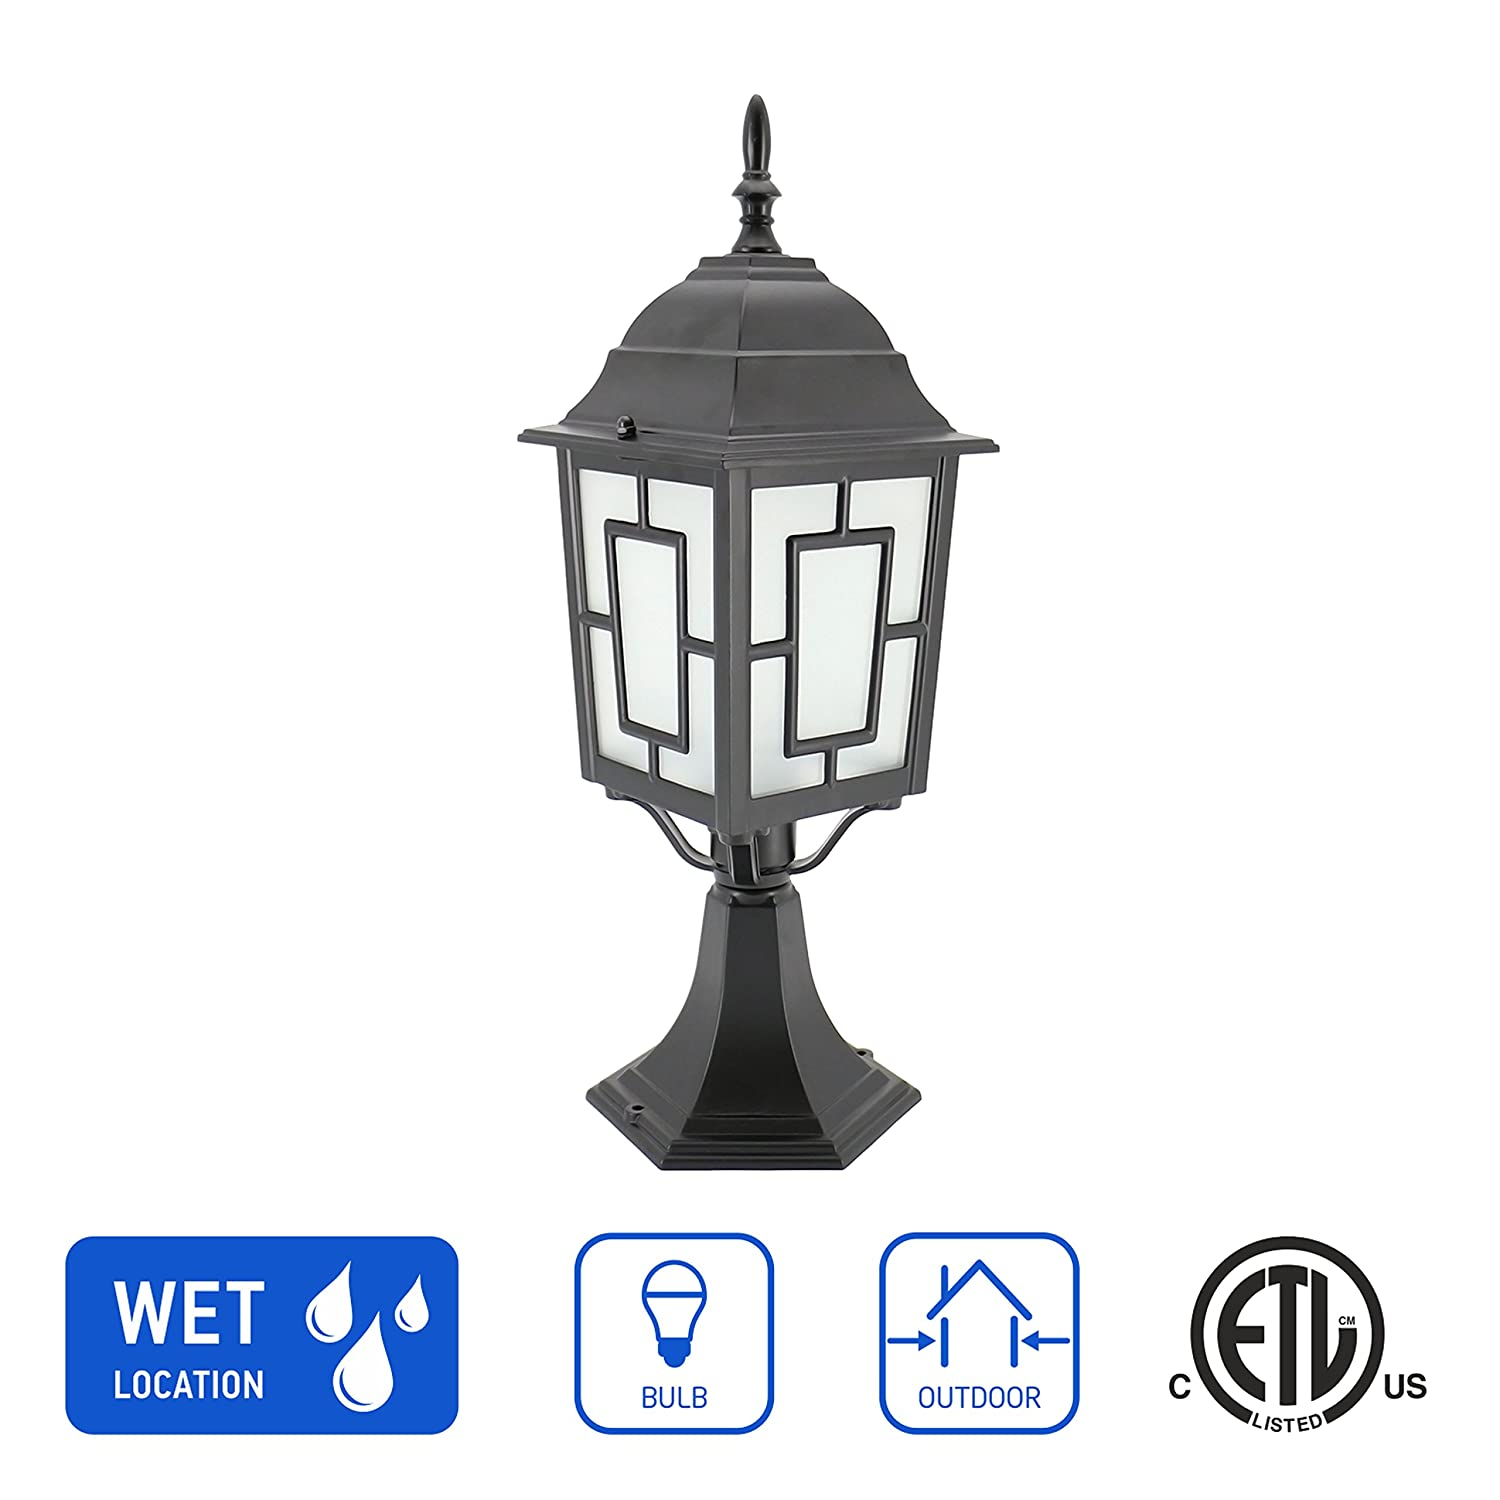 In home 1 light outdoor garden post lantern l05 lighting fixture traditional post lamp patio with one e26 base water proof black cast aluminum housing